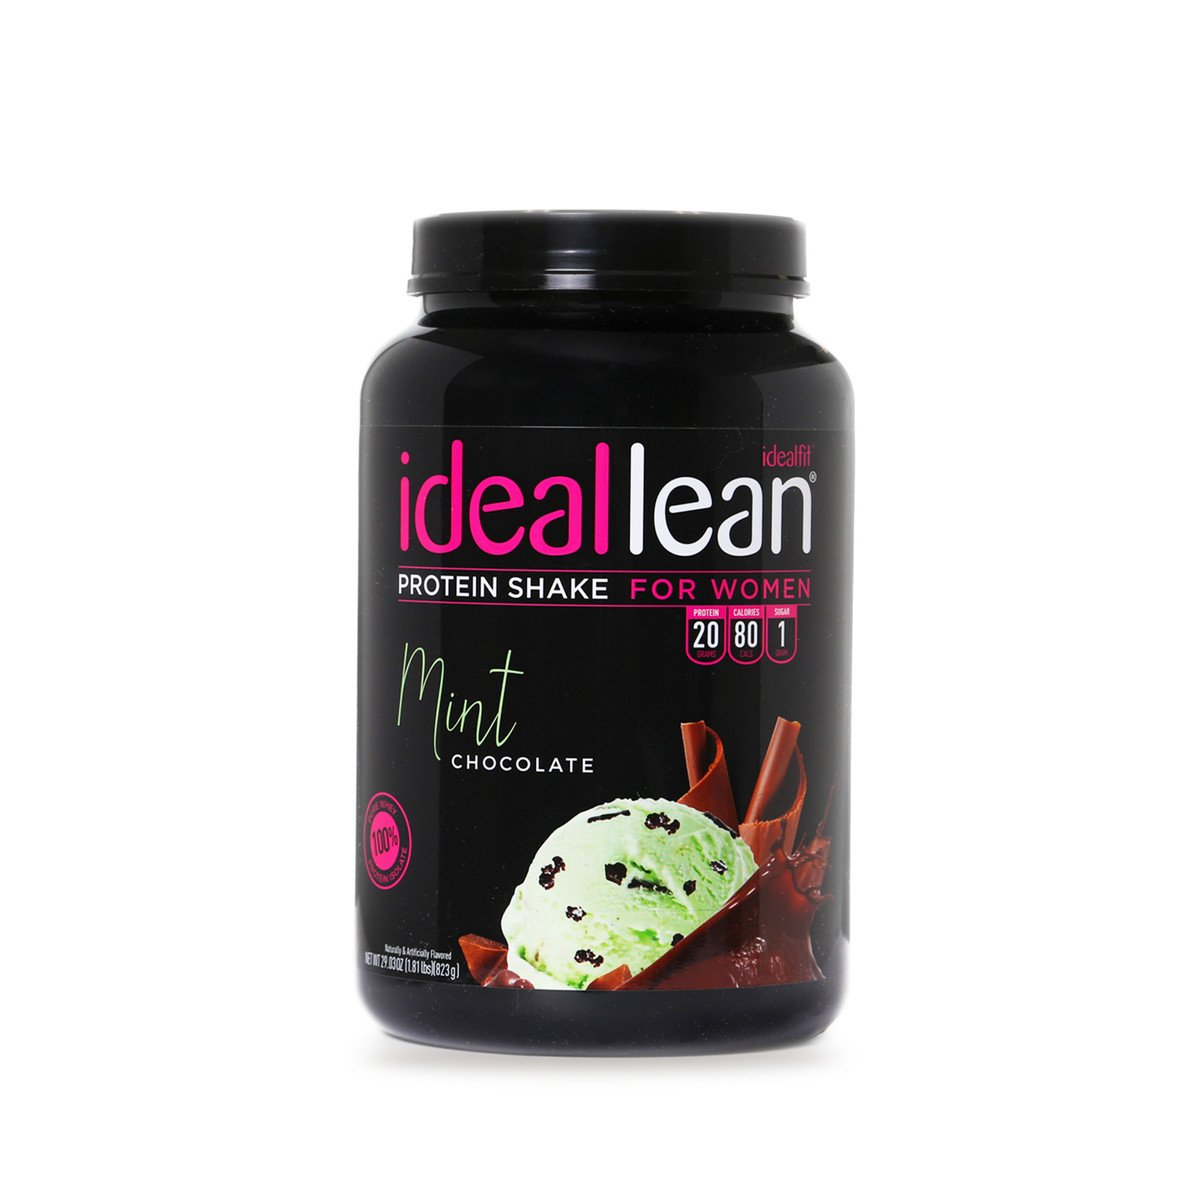 IdealLean - Nutritional Protein Powder for Women | 20g Whey Protein Isolate | Supports Weight Loss | Healthy Low Carb Shakes with Folic Acid & Vitamin D | 30 Servings (Chocolate Mint) by IdealFit